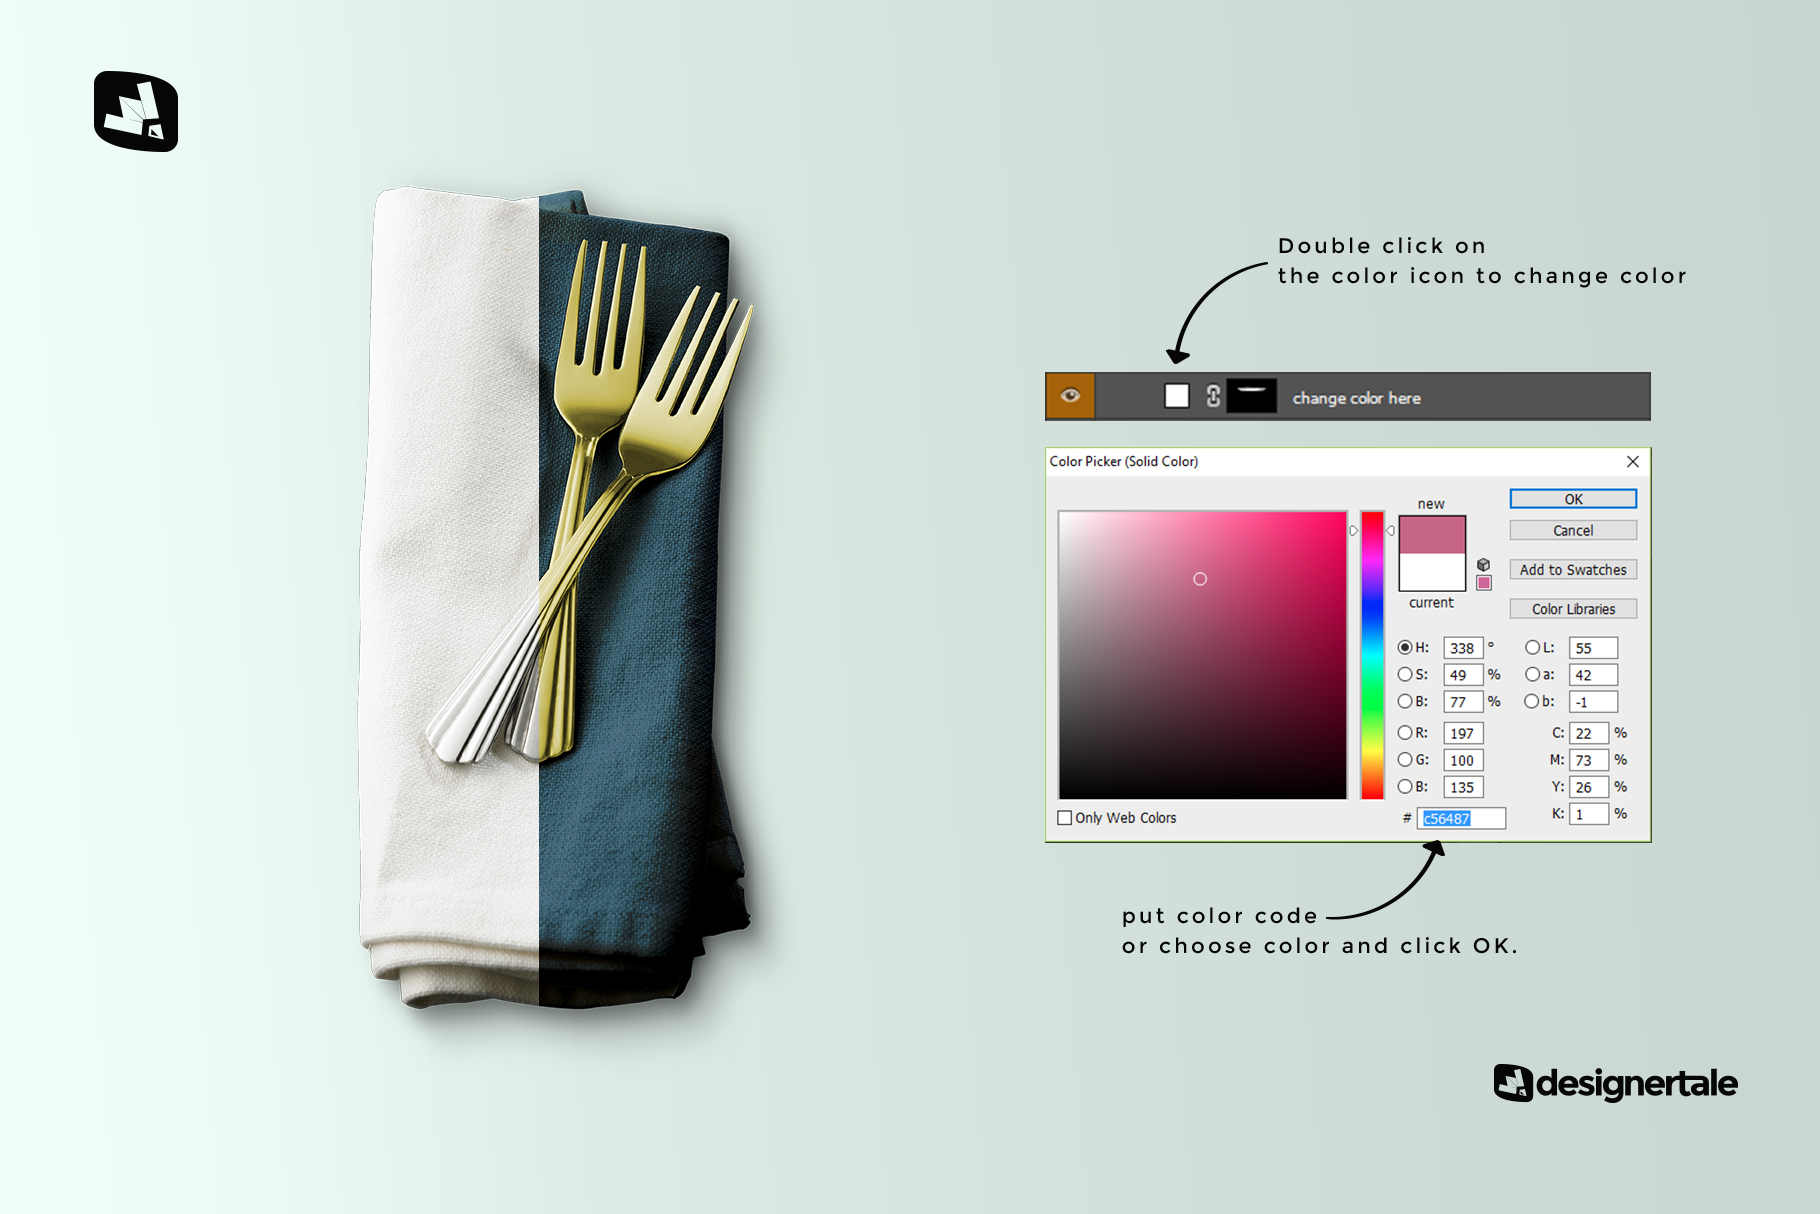 how to change color of the dinner napkin with cutlery mockup